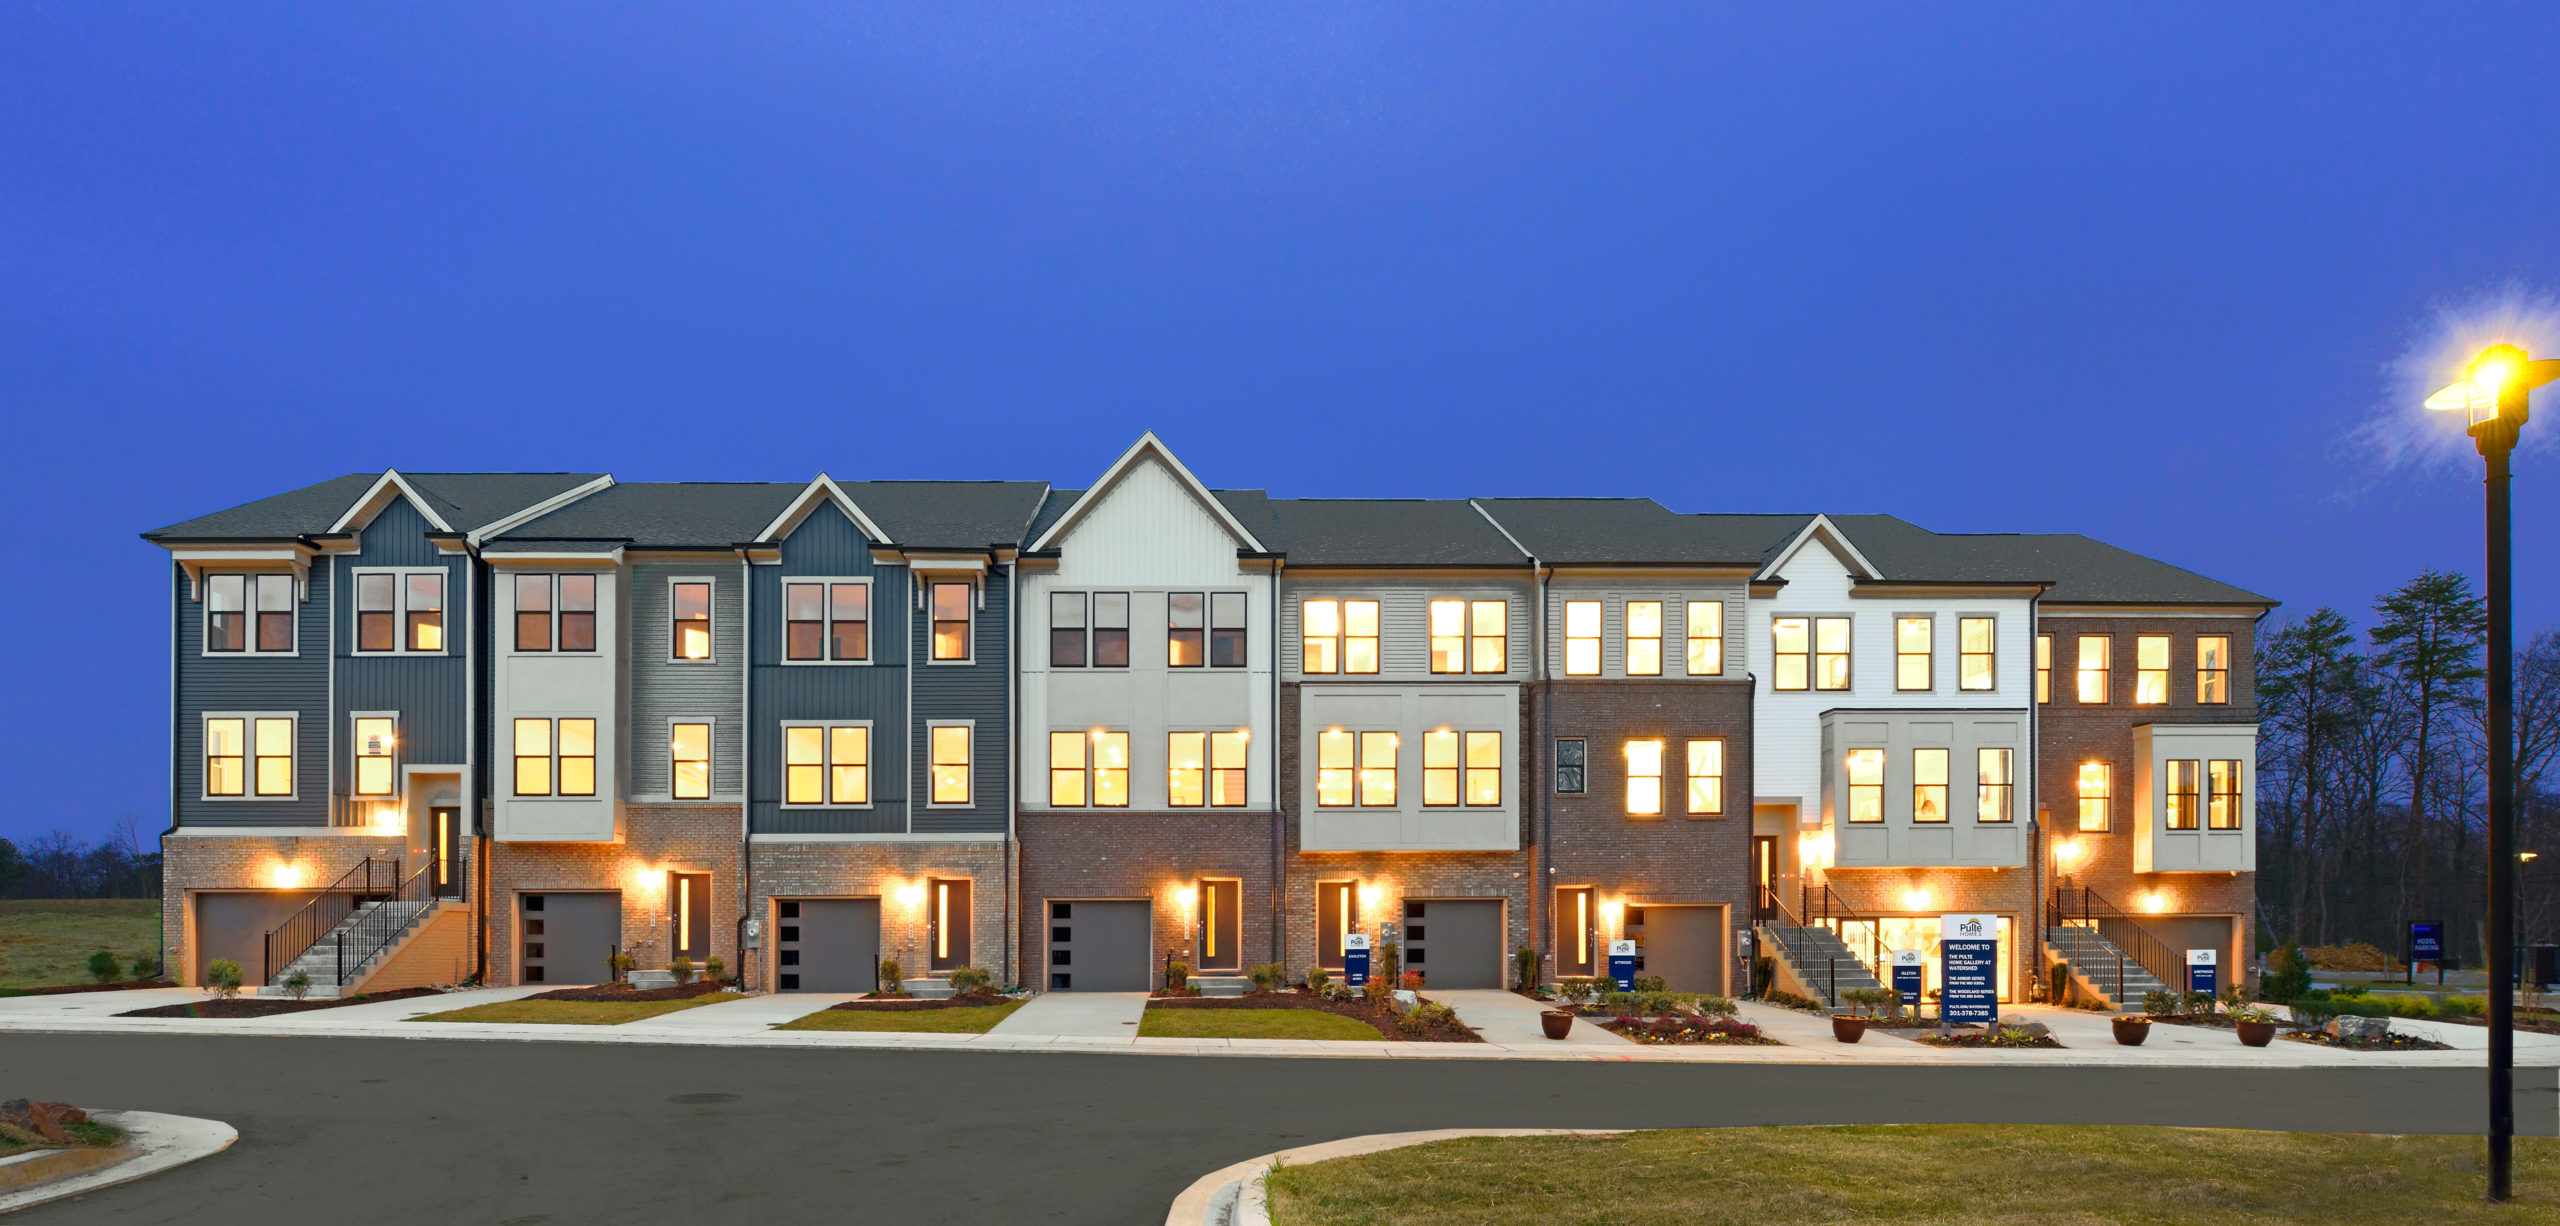 new luxury townhomes on the border of Anne Arundel and Prince Georges County